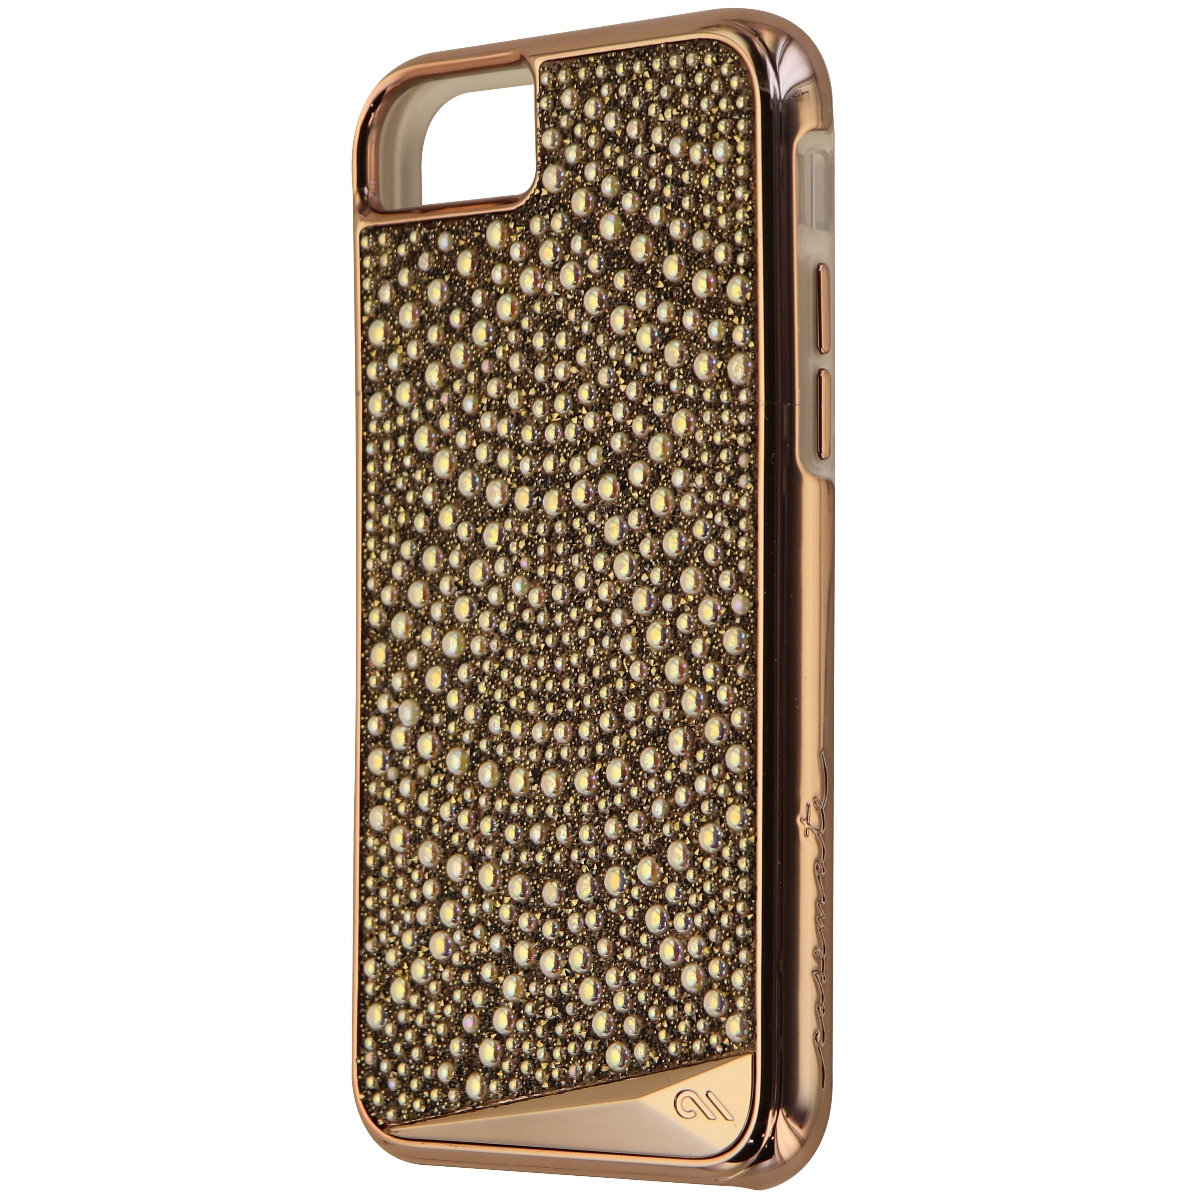 Case-Mate Brilliance Lace Case for iPhone 8 / 7 / 6s - Pearl and Crystal